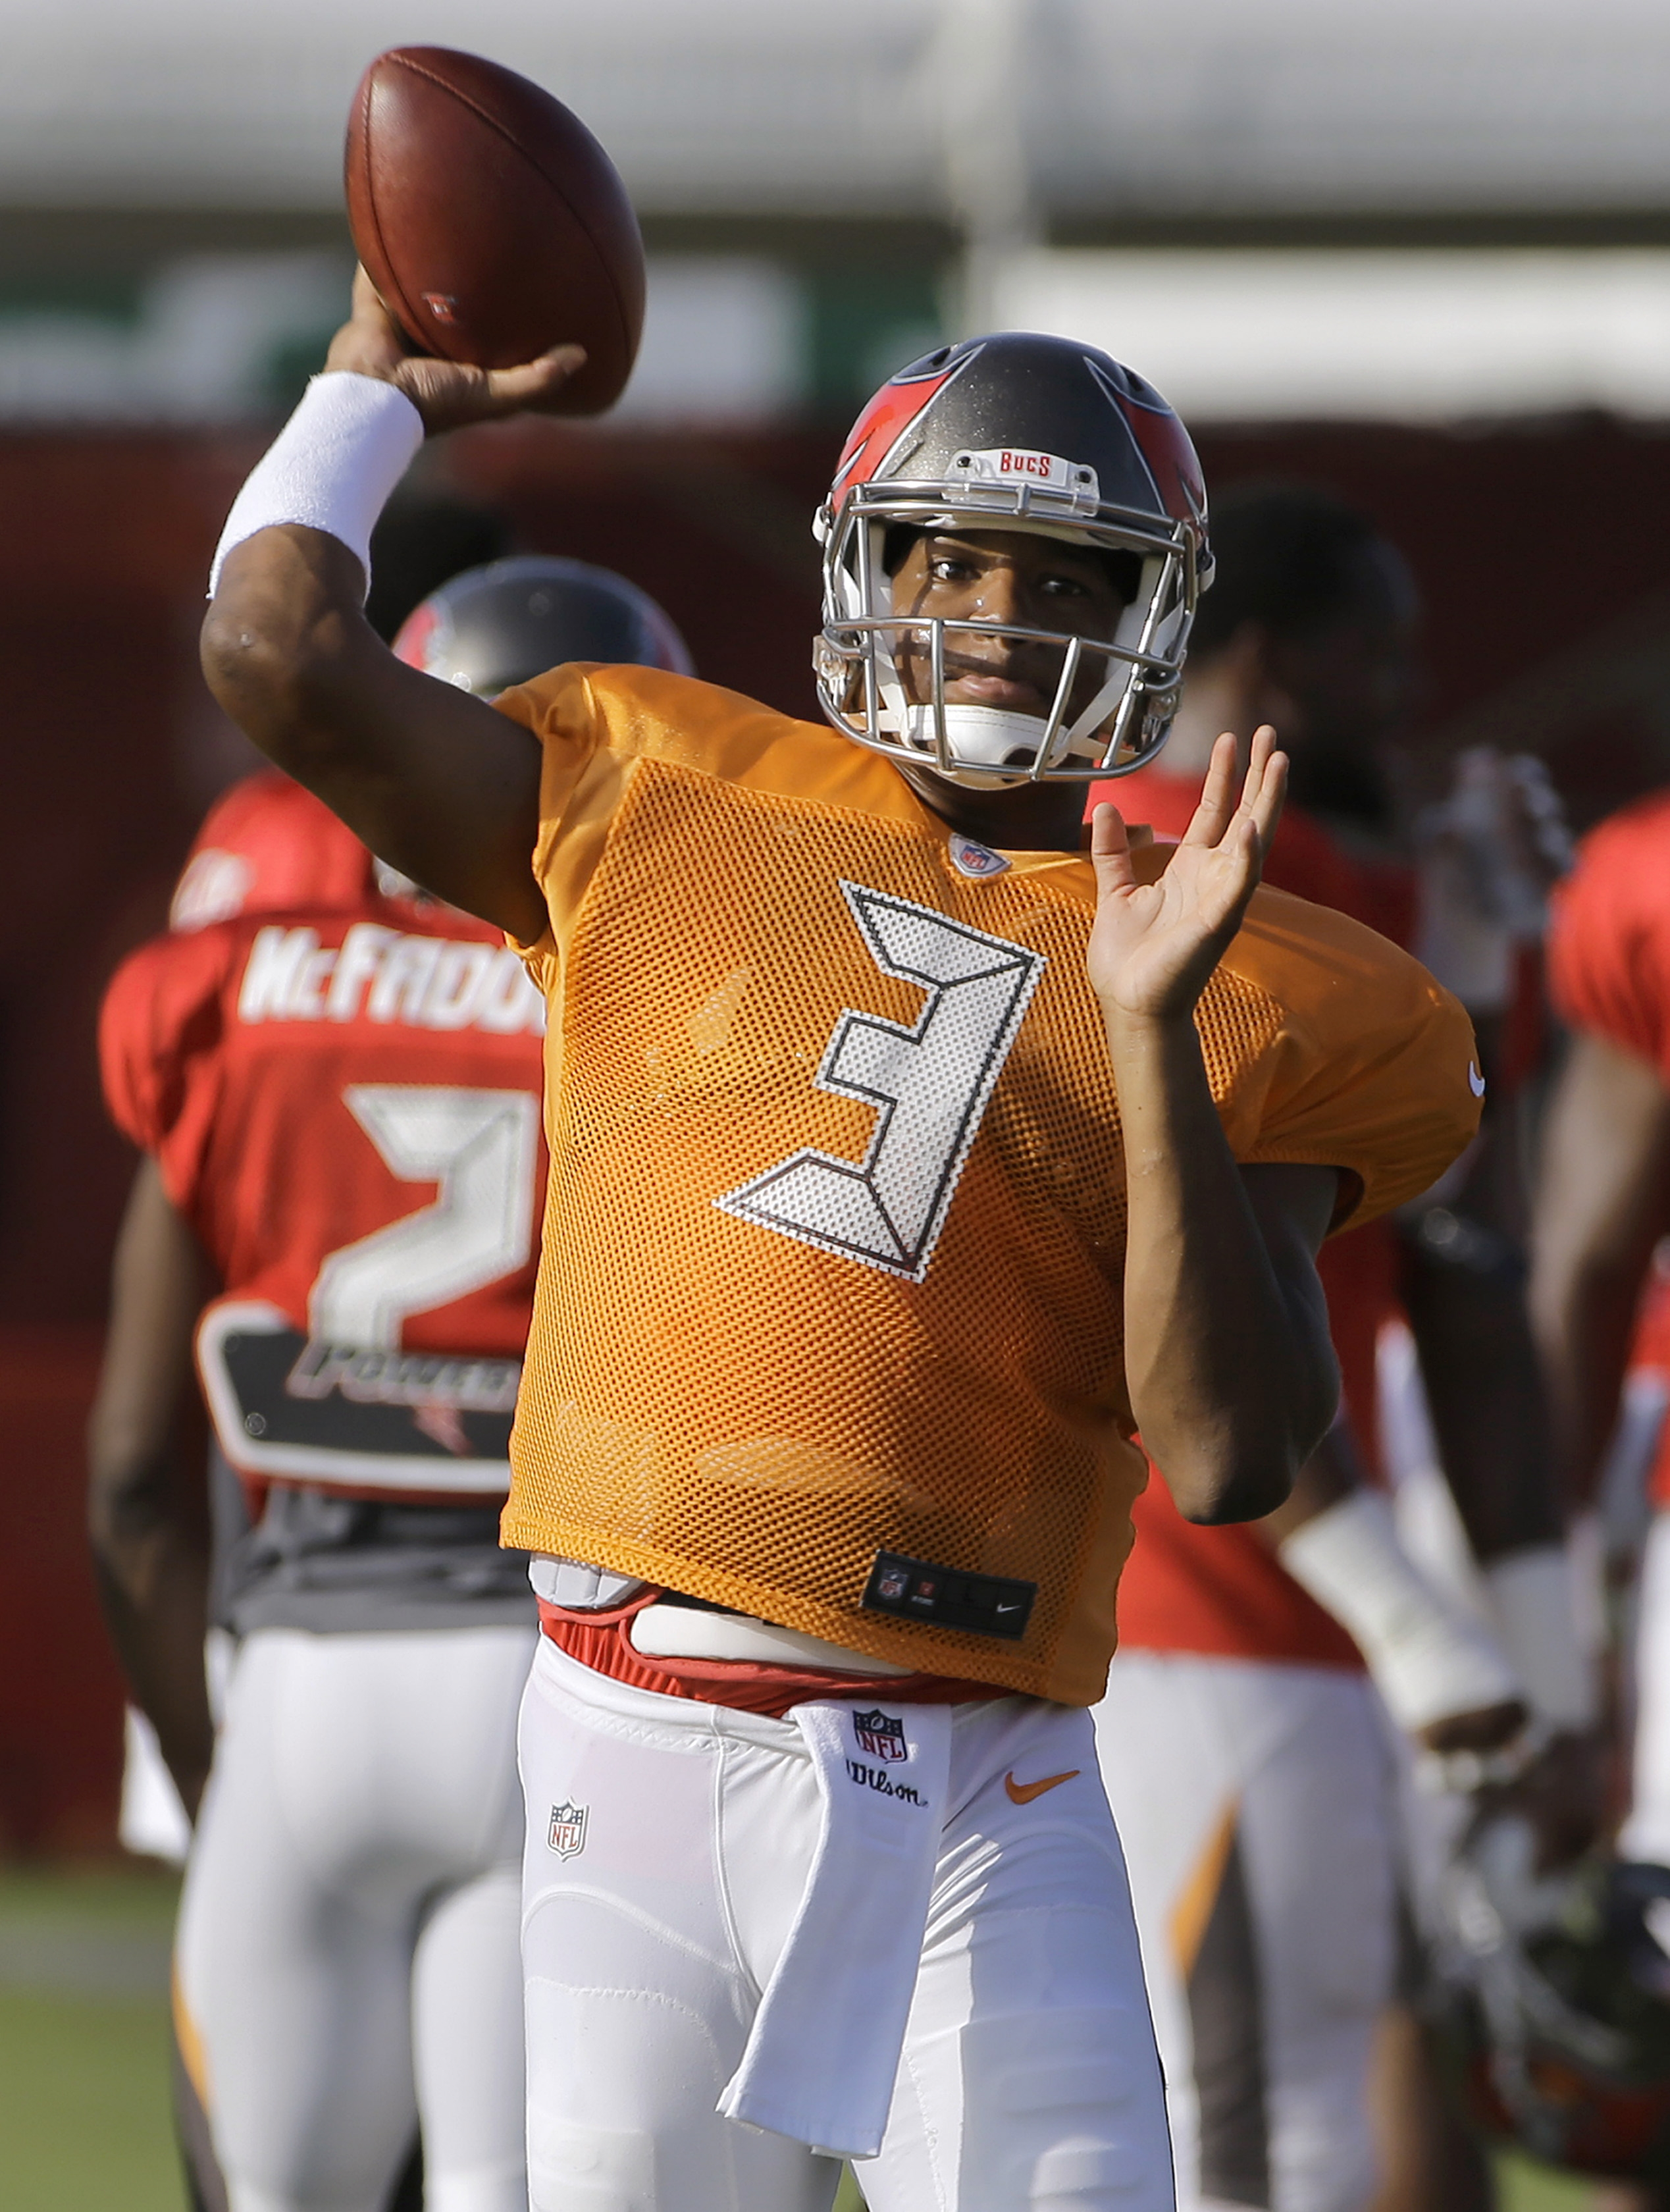 Tampa Bay Buccaneers quarterback Jameis Winston throws a pass during a Buccaneers NFL football training camp practice Tuesday, Aug. 4, 2015, in Tampa, Fla. (AP Photo/Chris O'Meara)